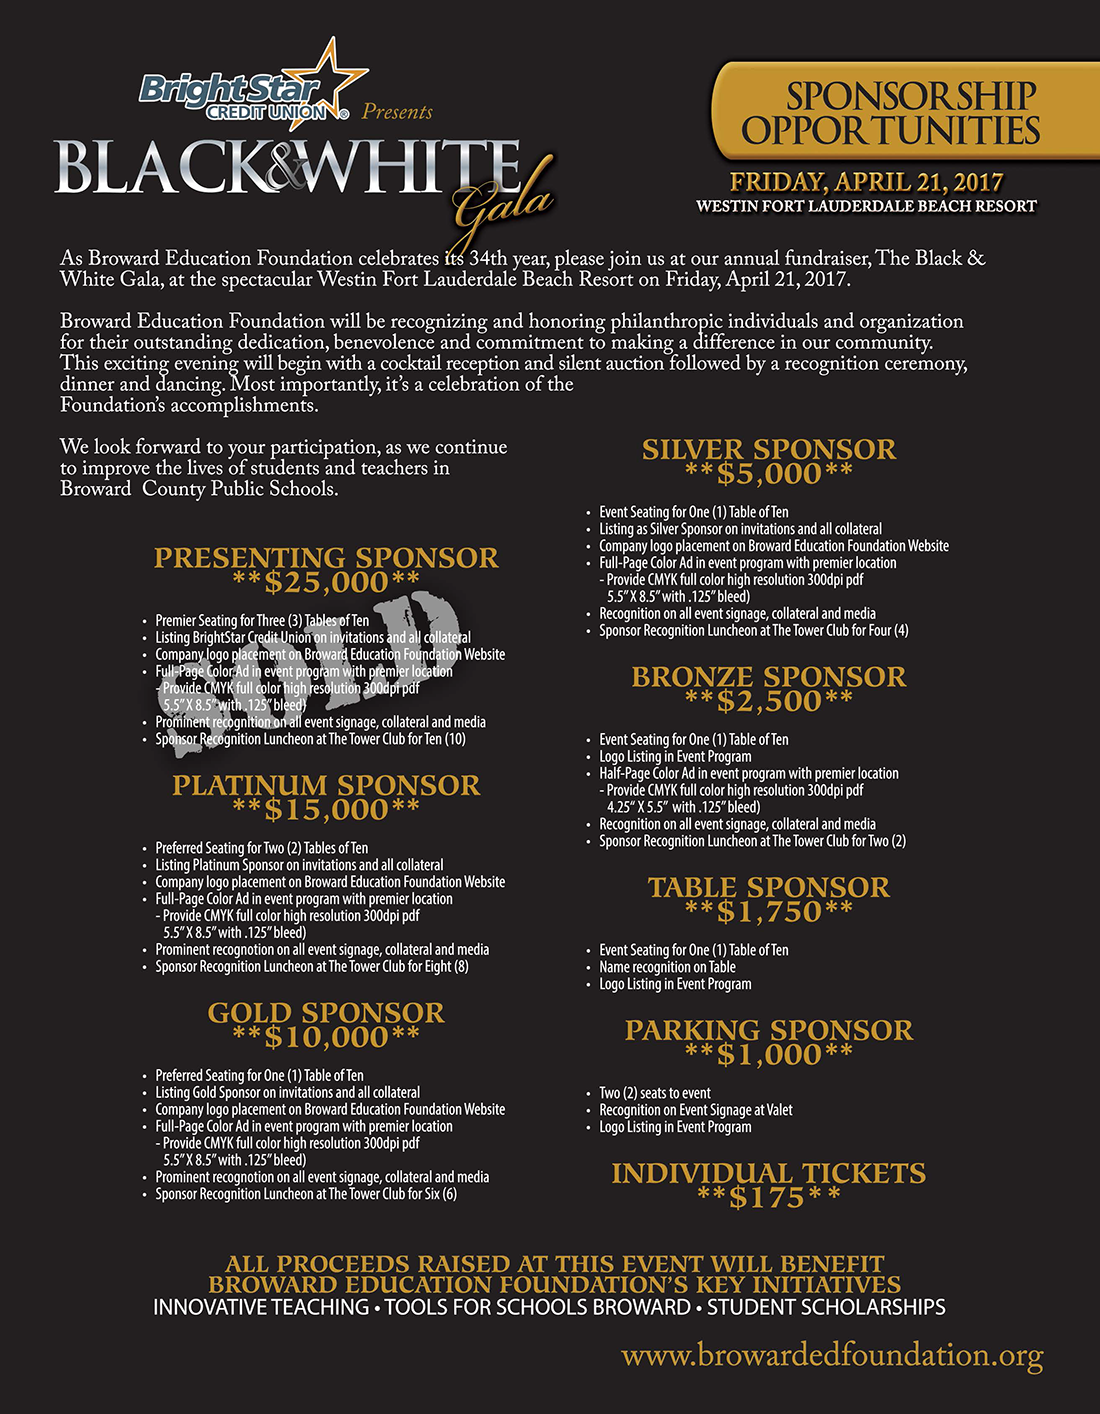 Black & White Gala Sponsorship Flyer